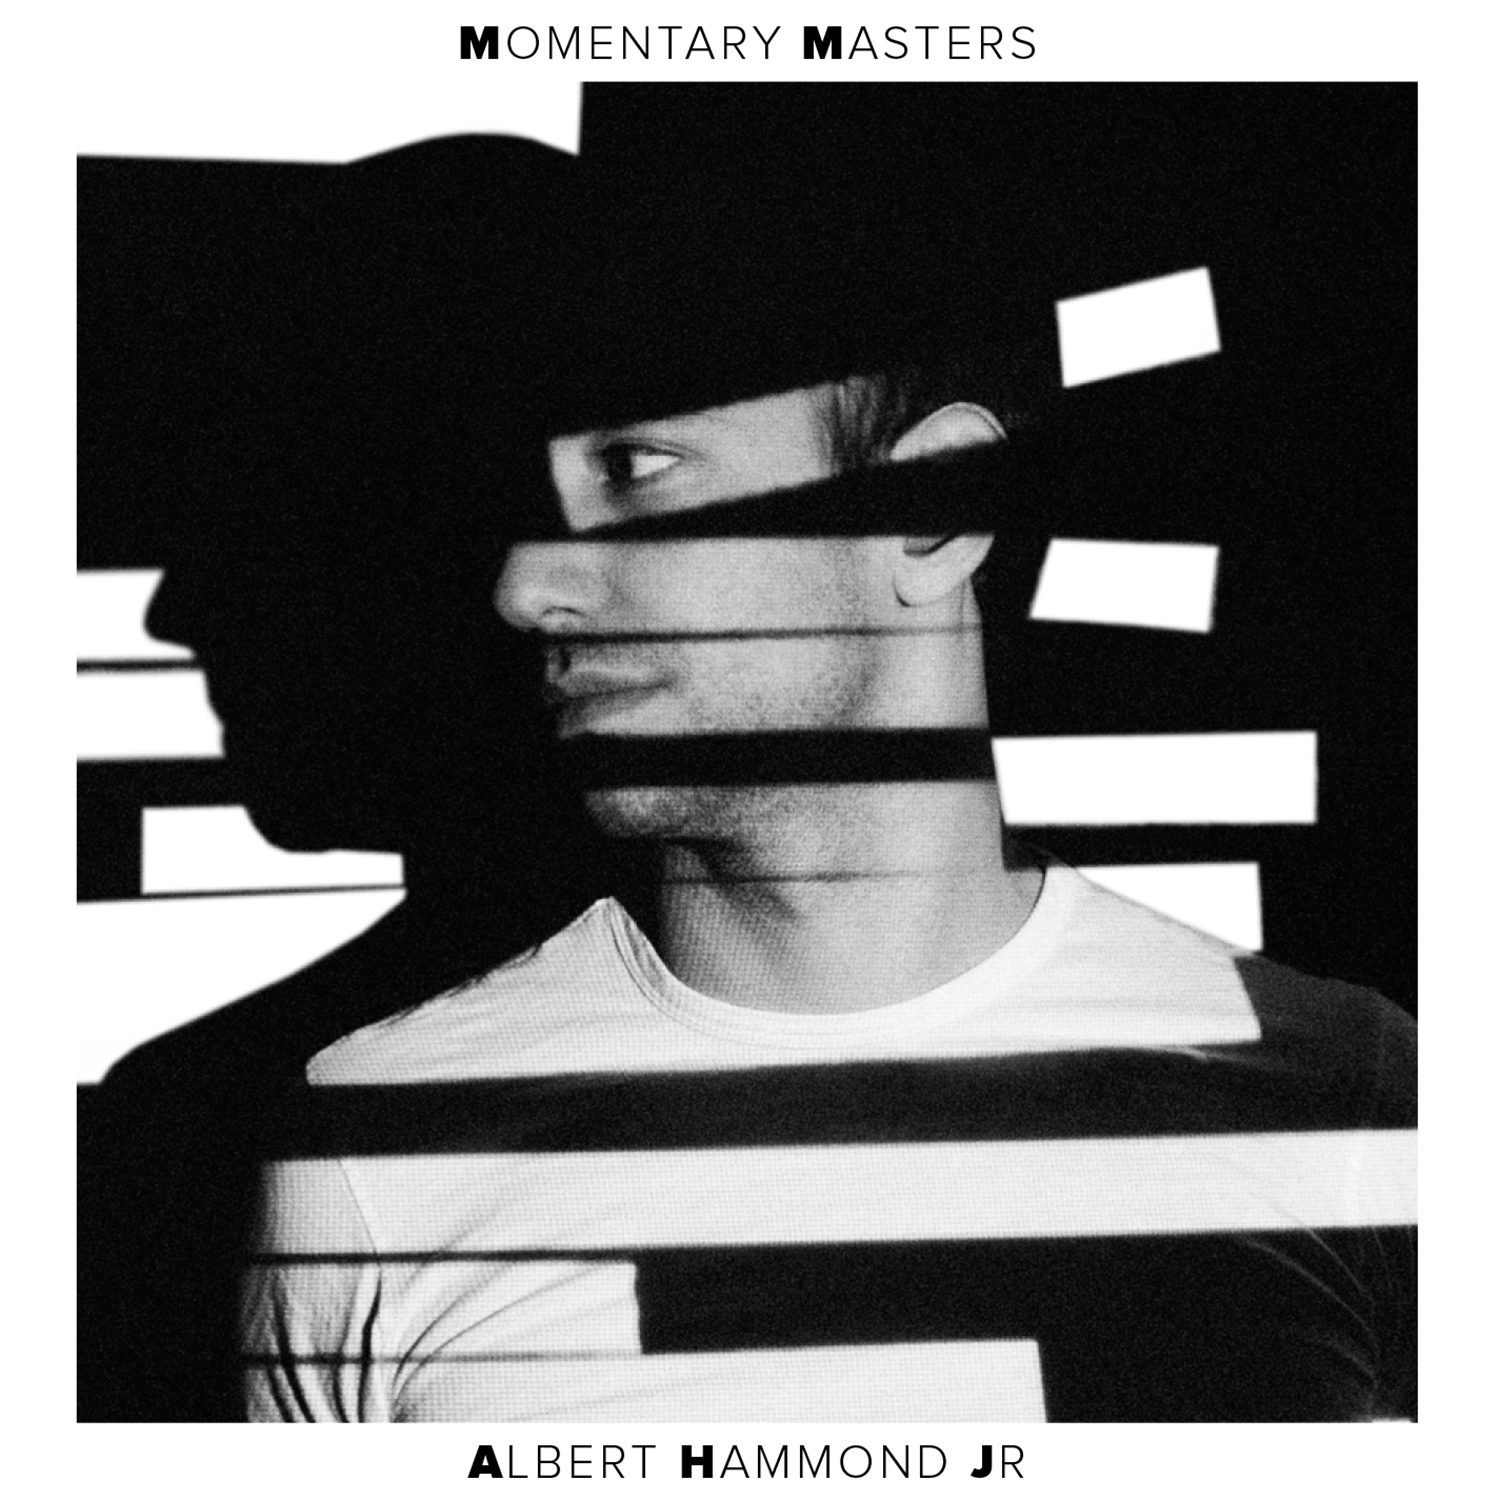 Review of 'Momentary Masters', the forthcoming release by Albert Hammond Jr.